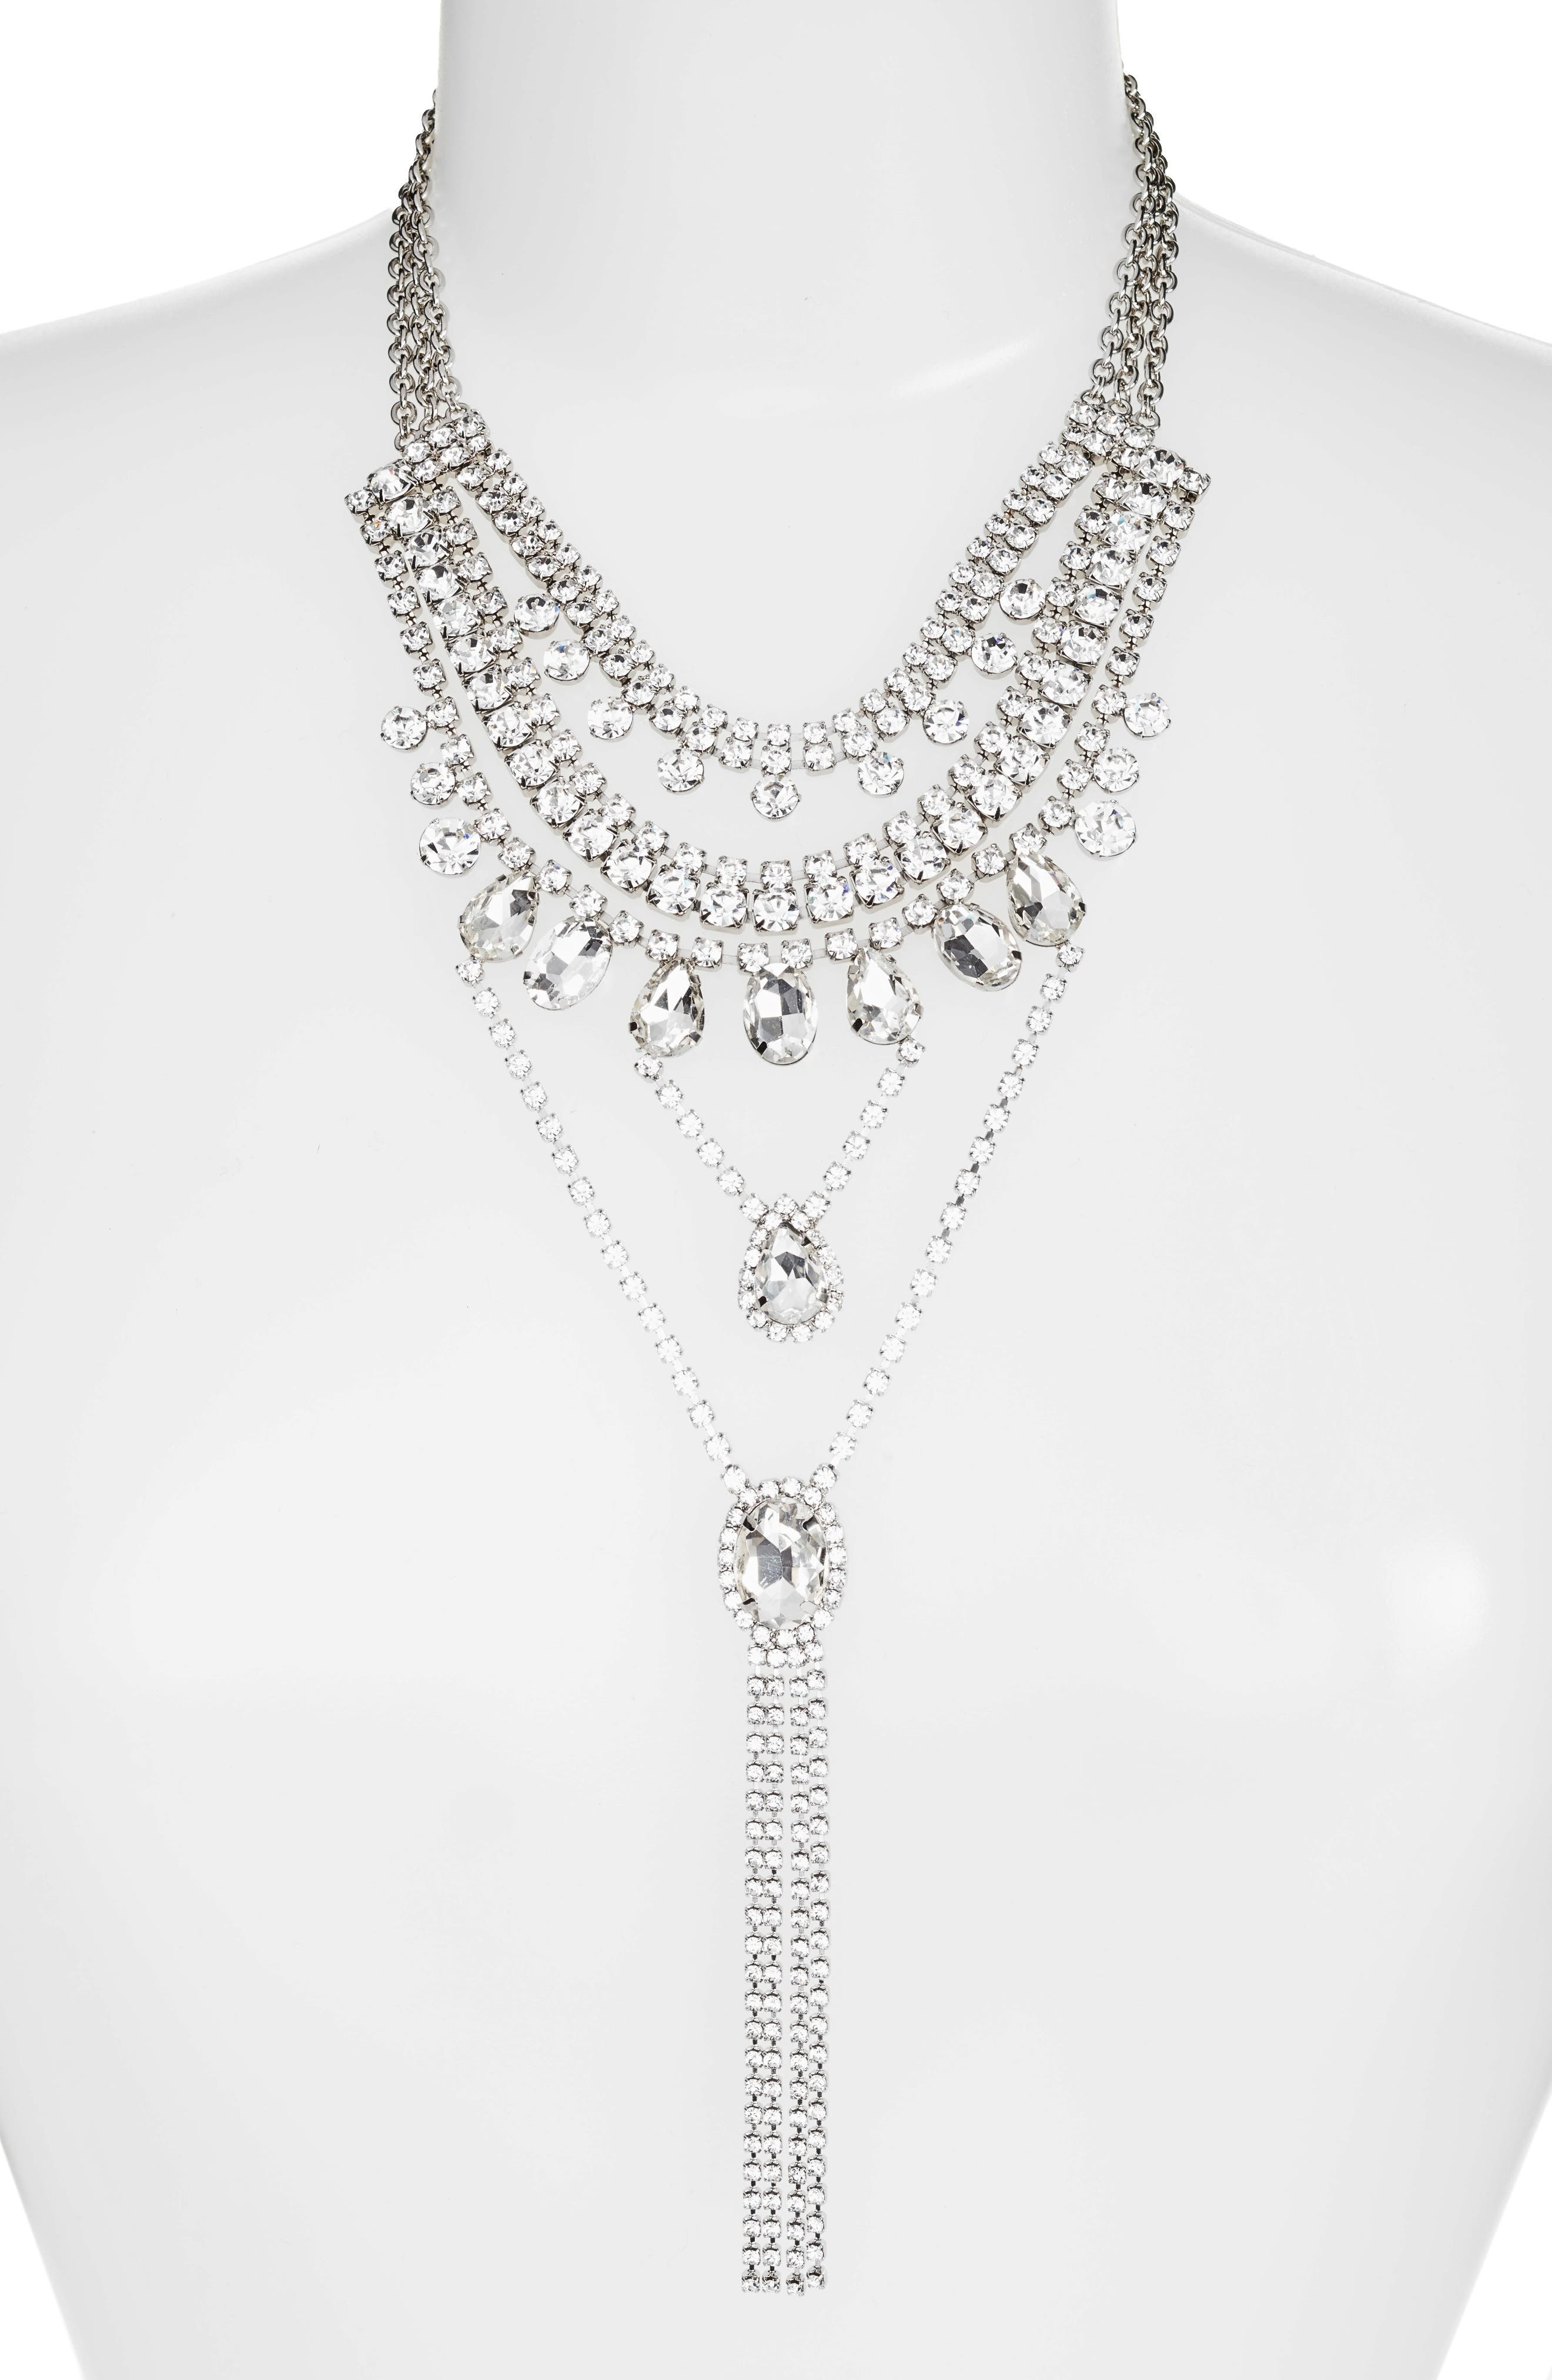 Multistrand Crystal Necklace,                             Alternate thumbnail 2, color,                             SILVER